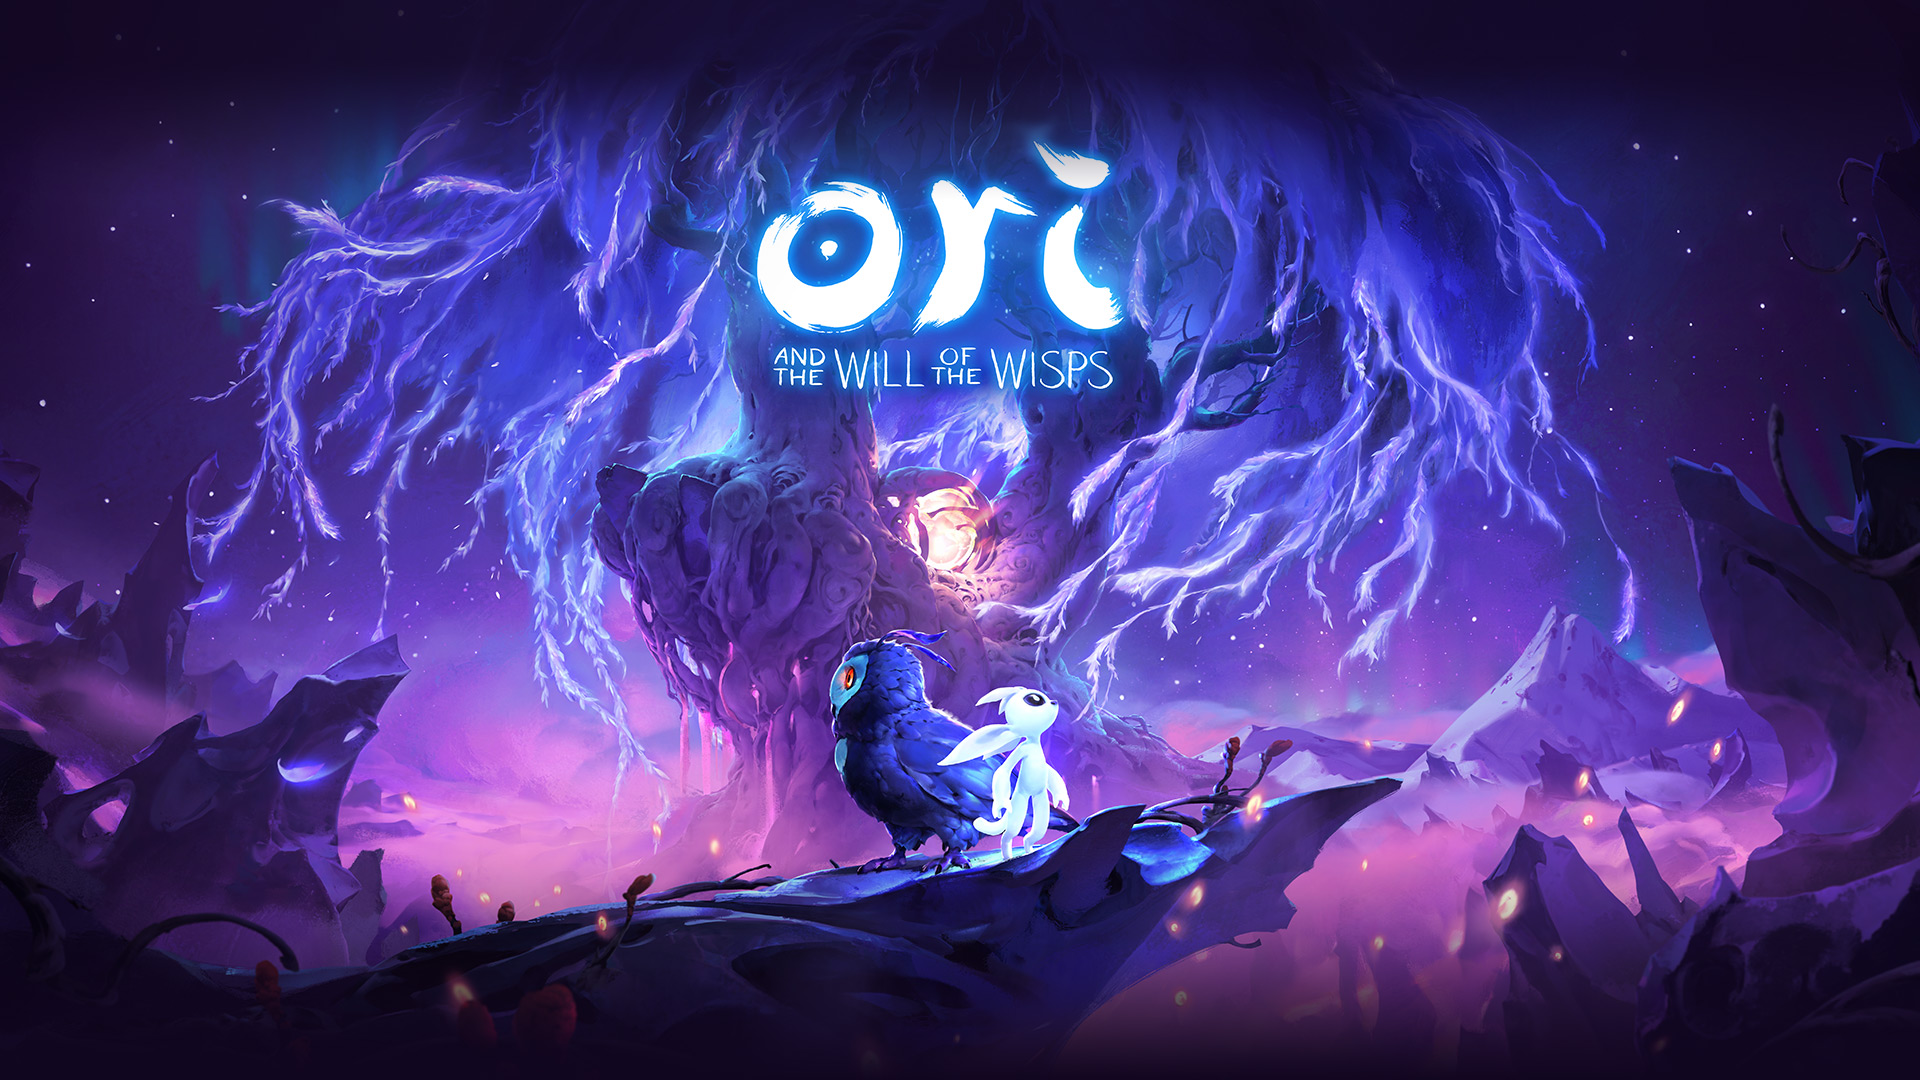 Ori and the Will of the Wisps, Ori se tenant debout à côté d'un hibou devant un arbre mauve fantastique.